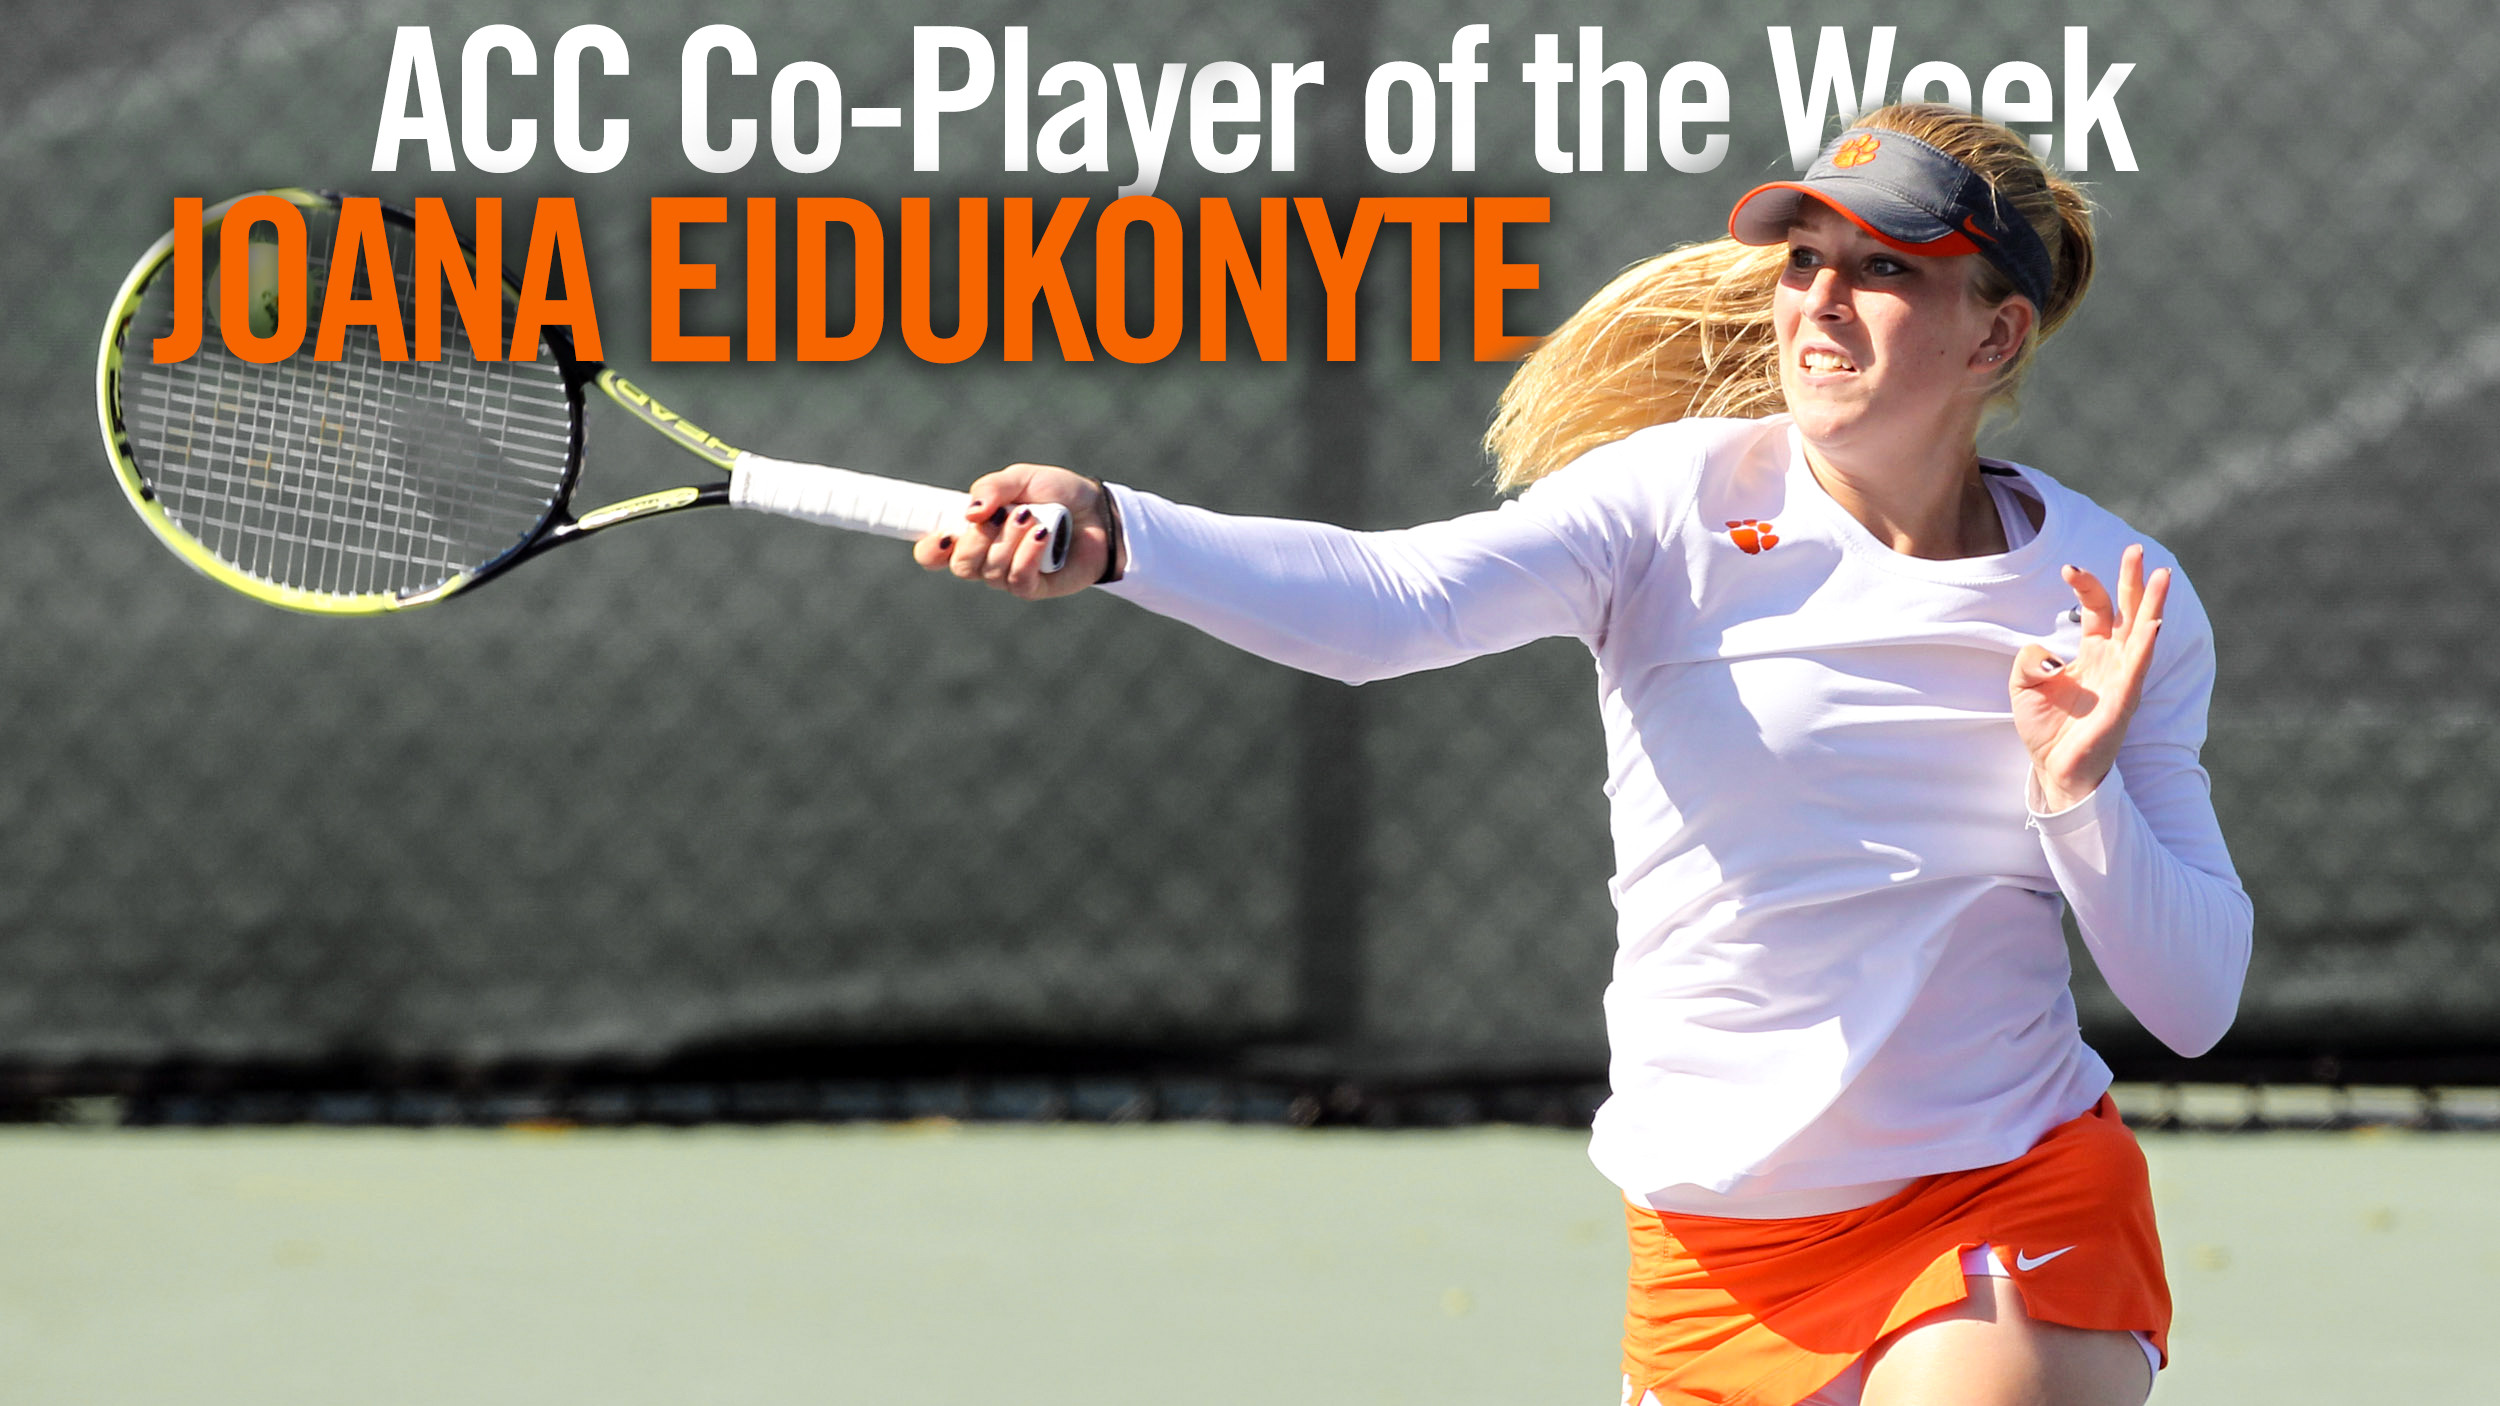 Eidukonyte Named ACC Co-Player of the Week